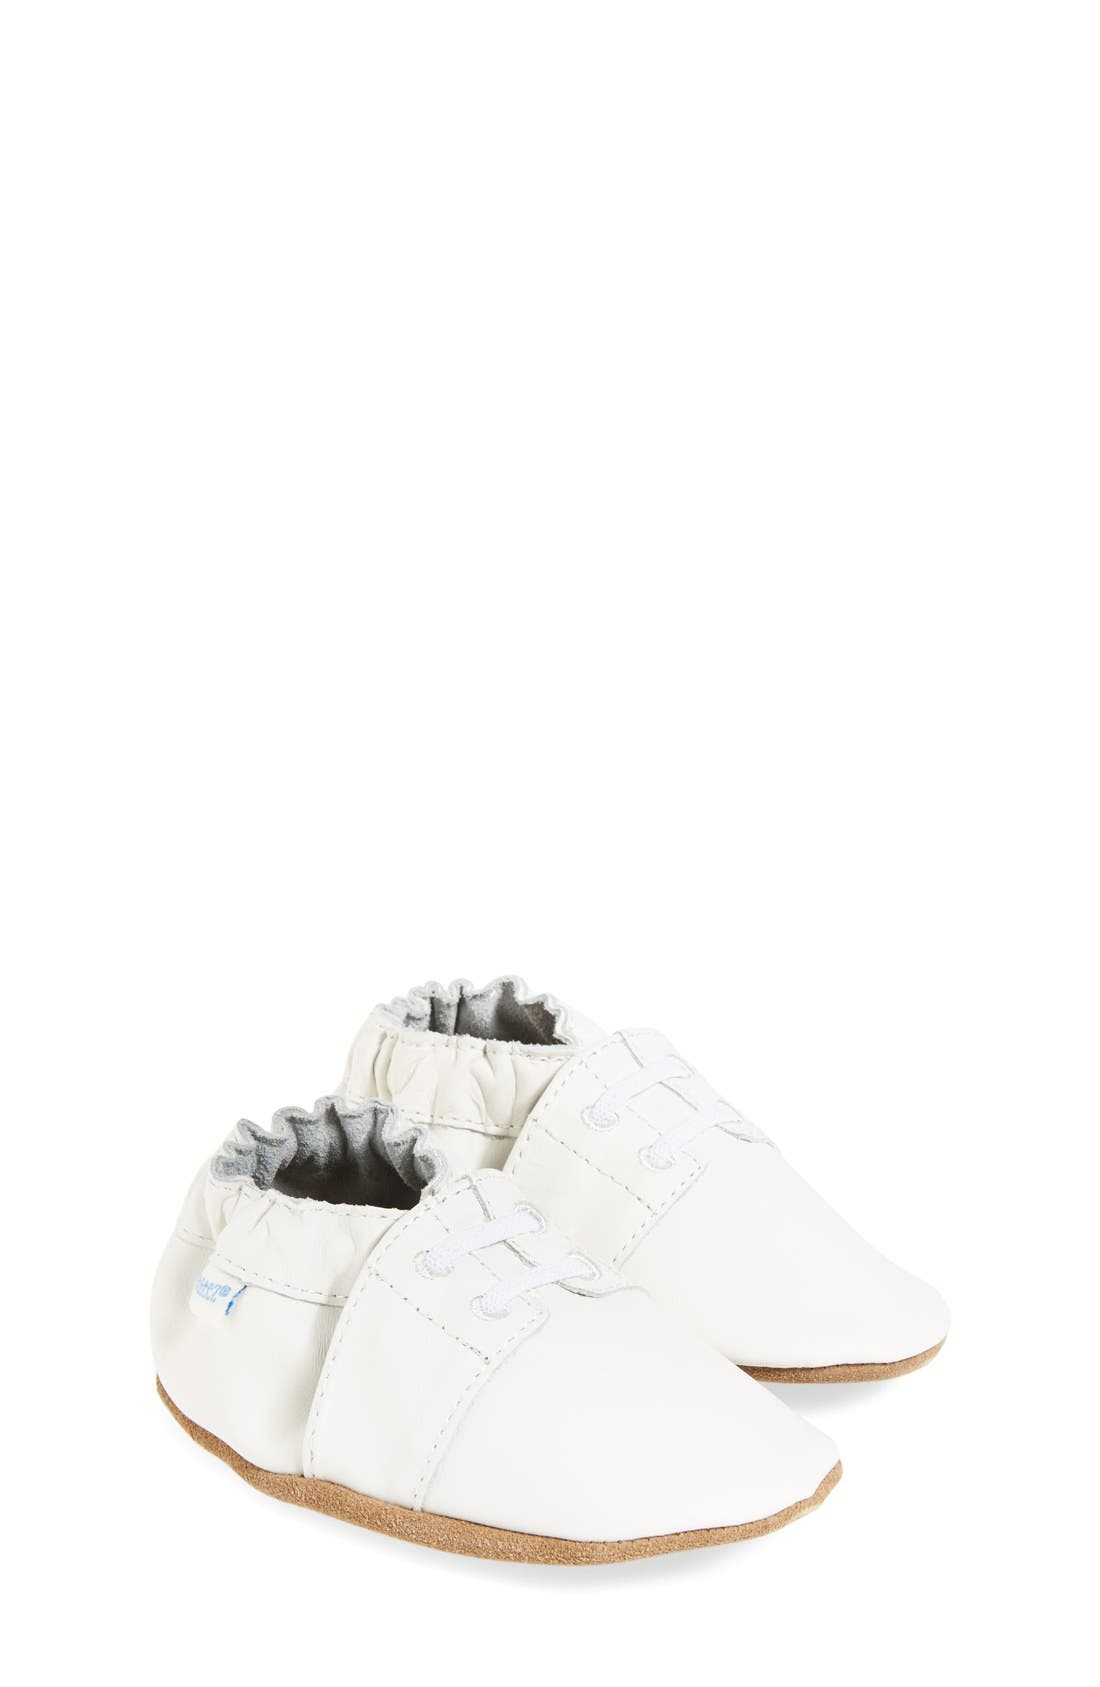 'Special Occasion' Crib Shoe,                             Main thumbnail 1, color,                             WHITE